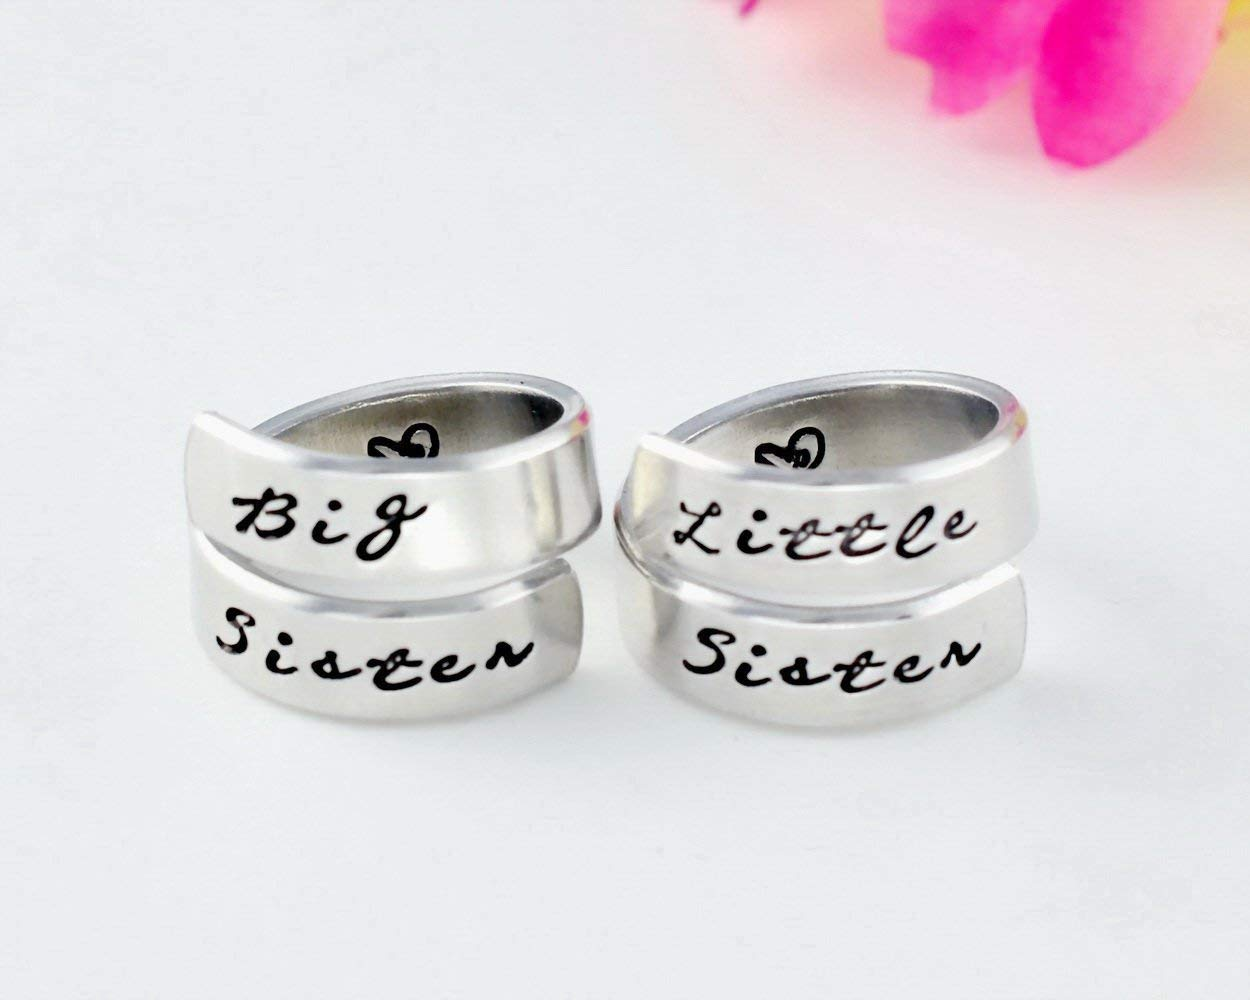 Big Sister Little Sister - Hand Stamped Aluminum Spiral Wrap Rings Set of 2, Big Lil Sis Rings, Sorority Friendship Best Friend BFF Personalized Gift